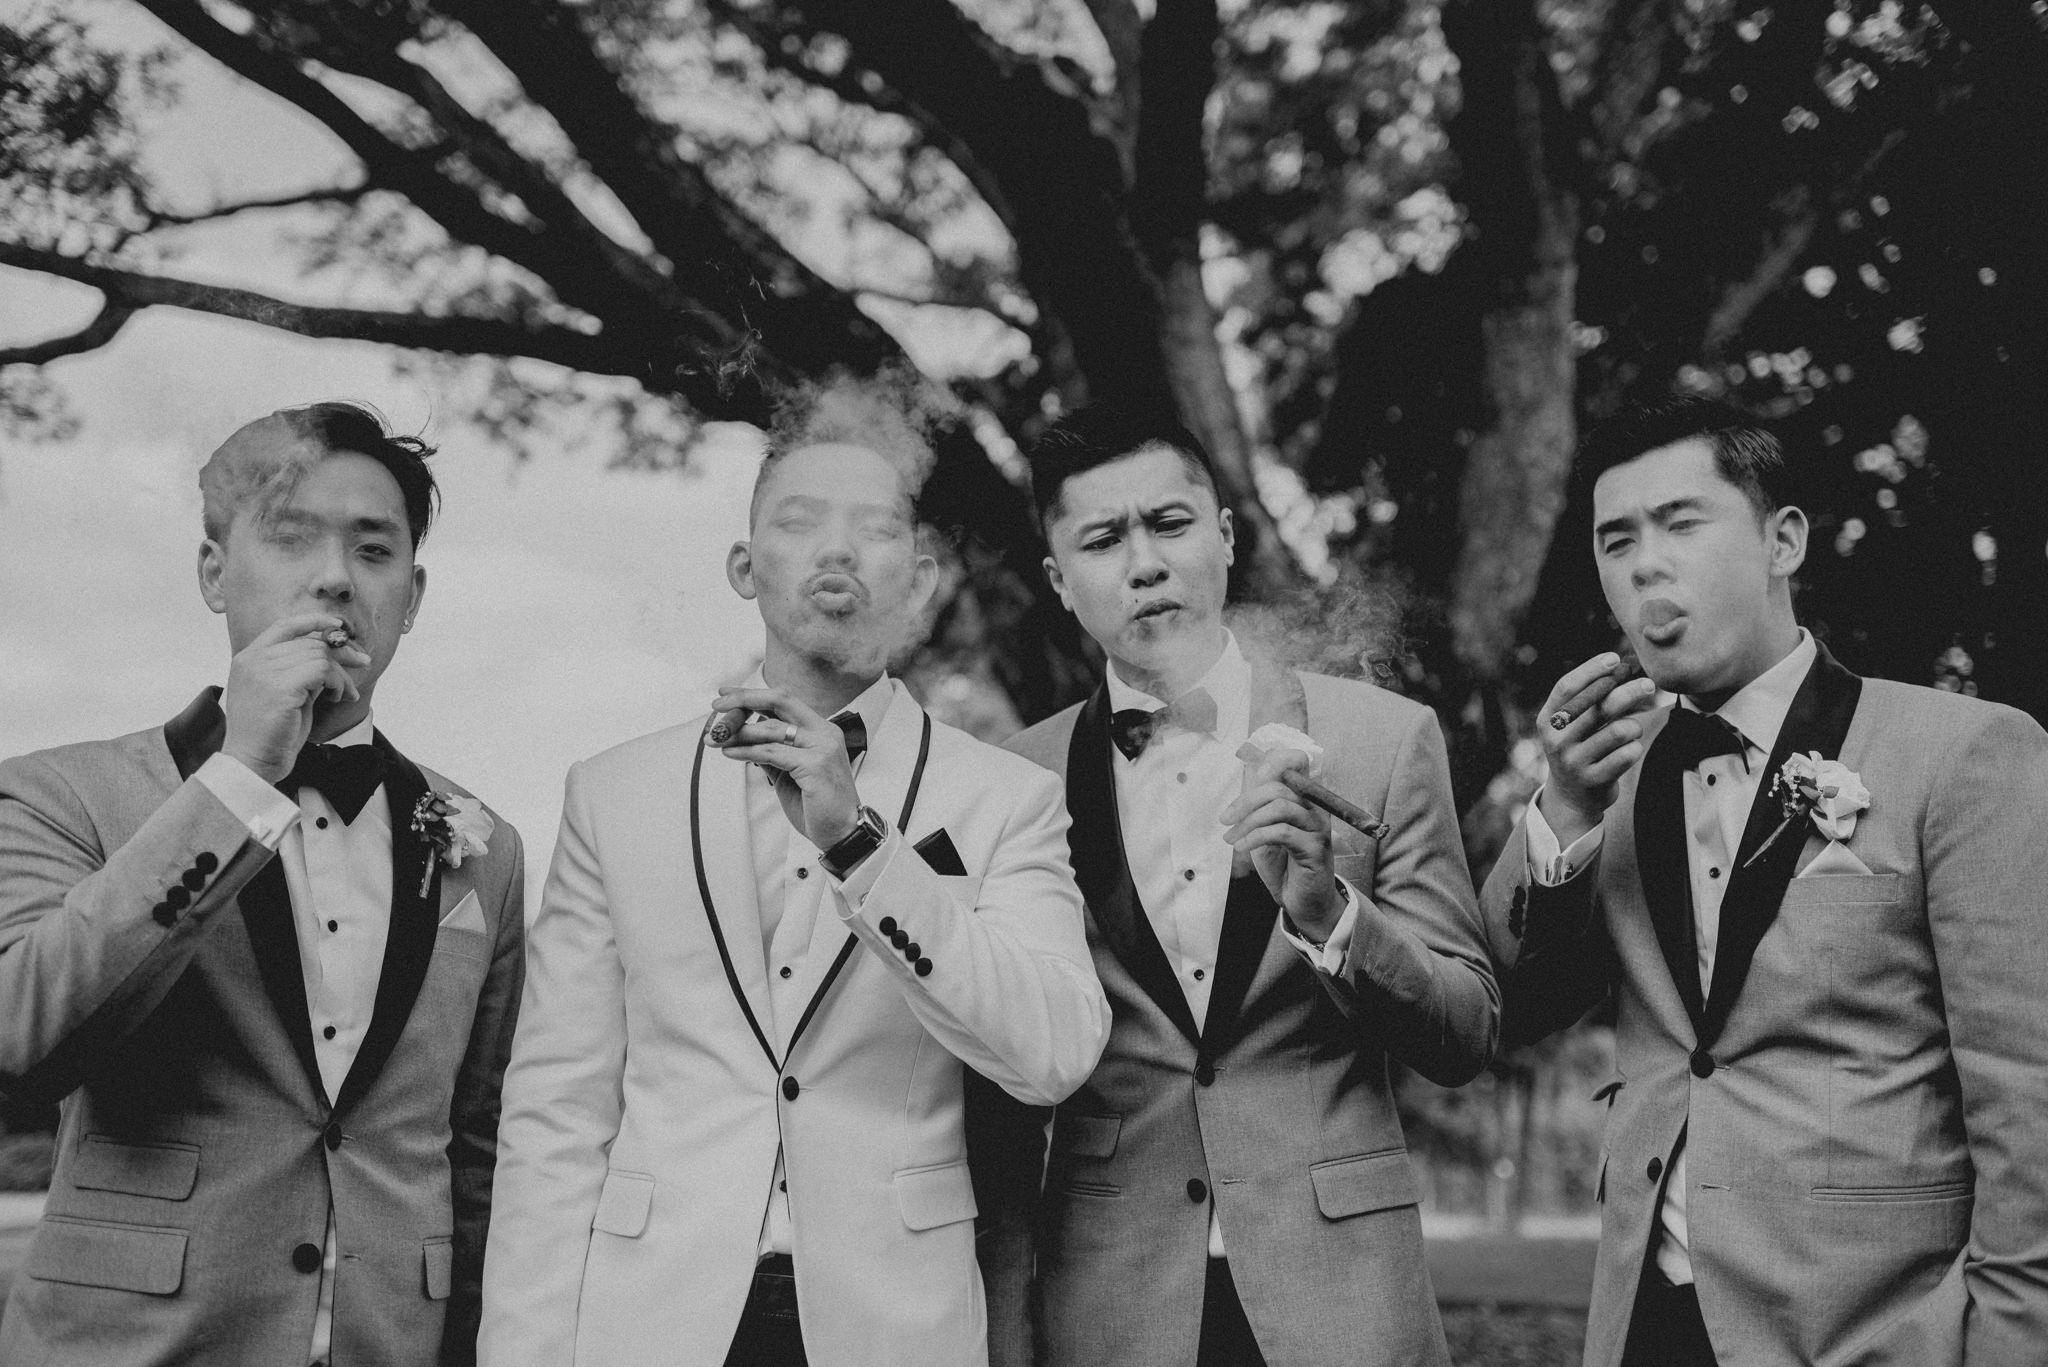 Four asian men in tuxedos smoke cigars together